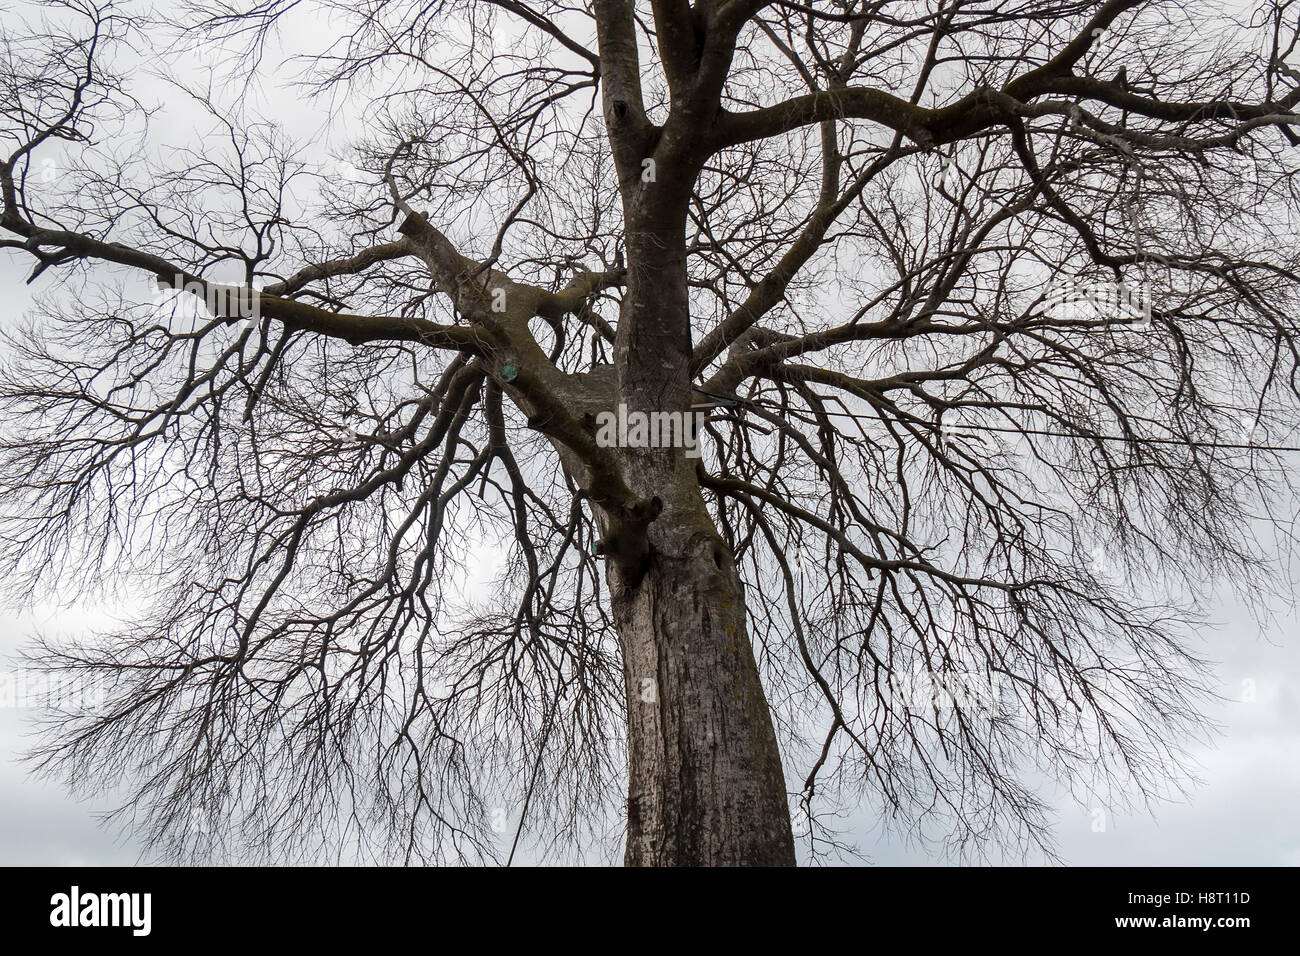 Treetop branches of a leafless tree in winter - Stock Image